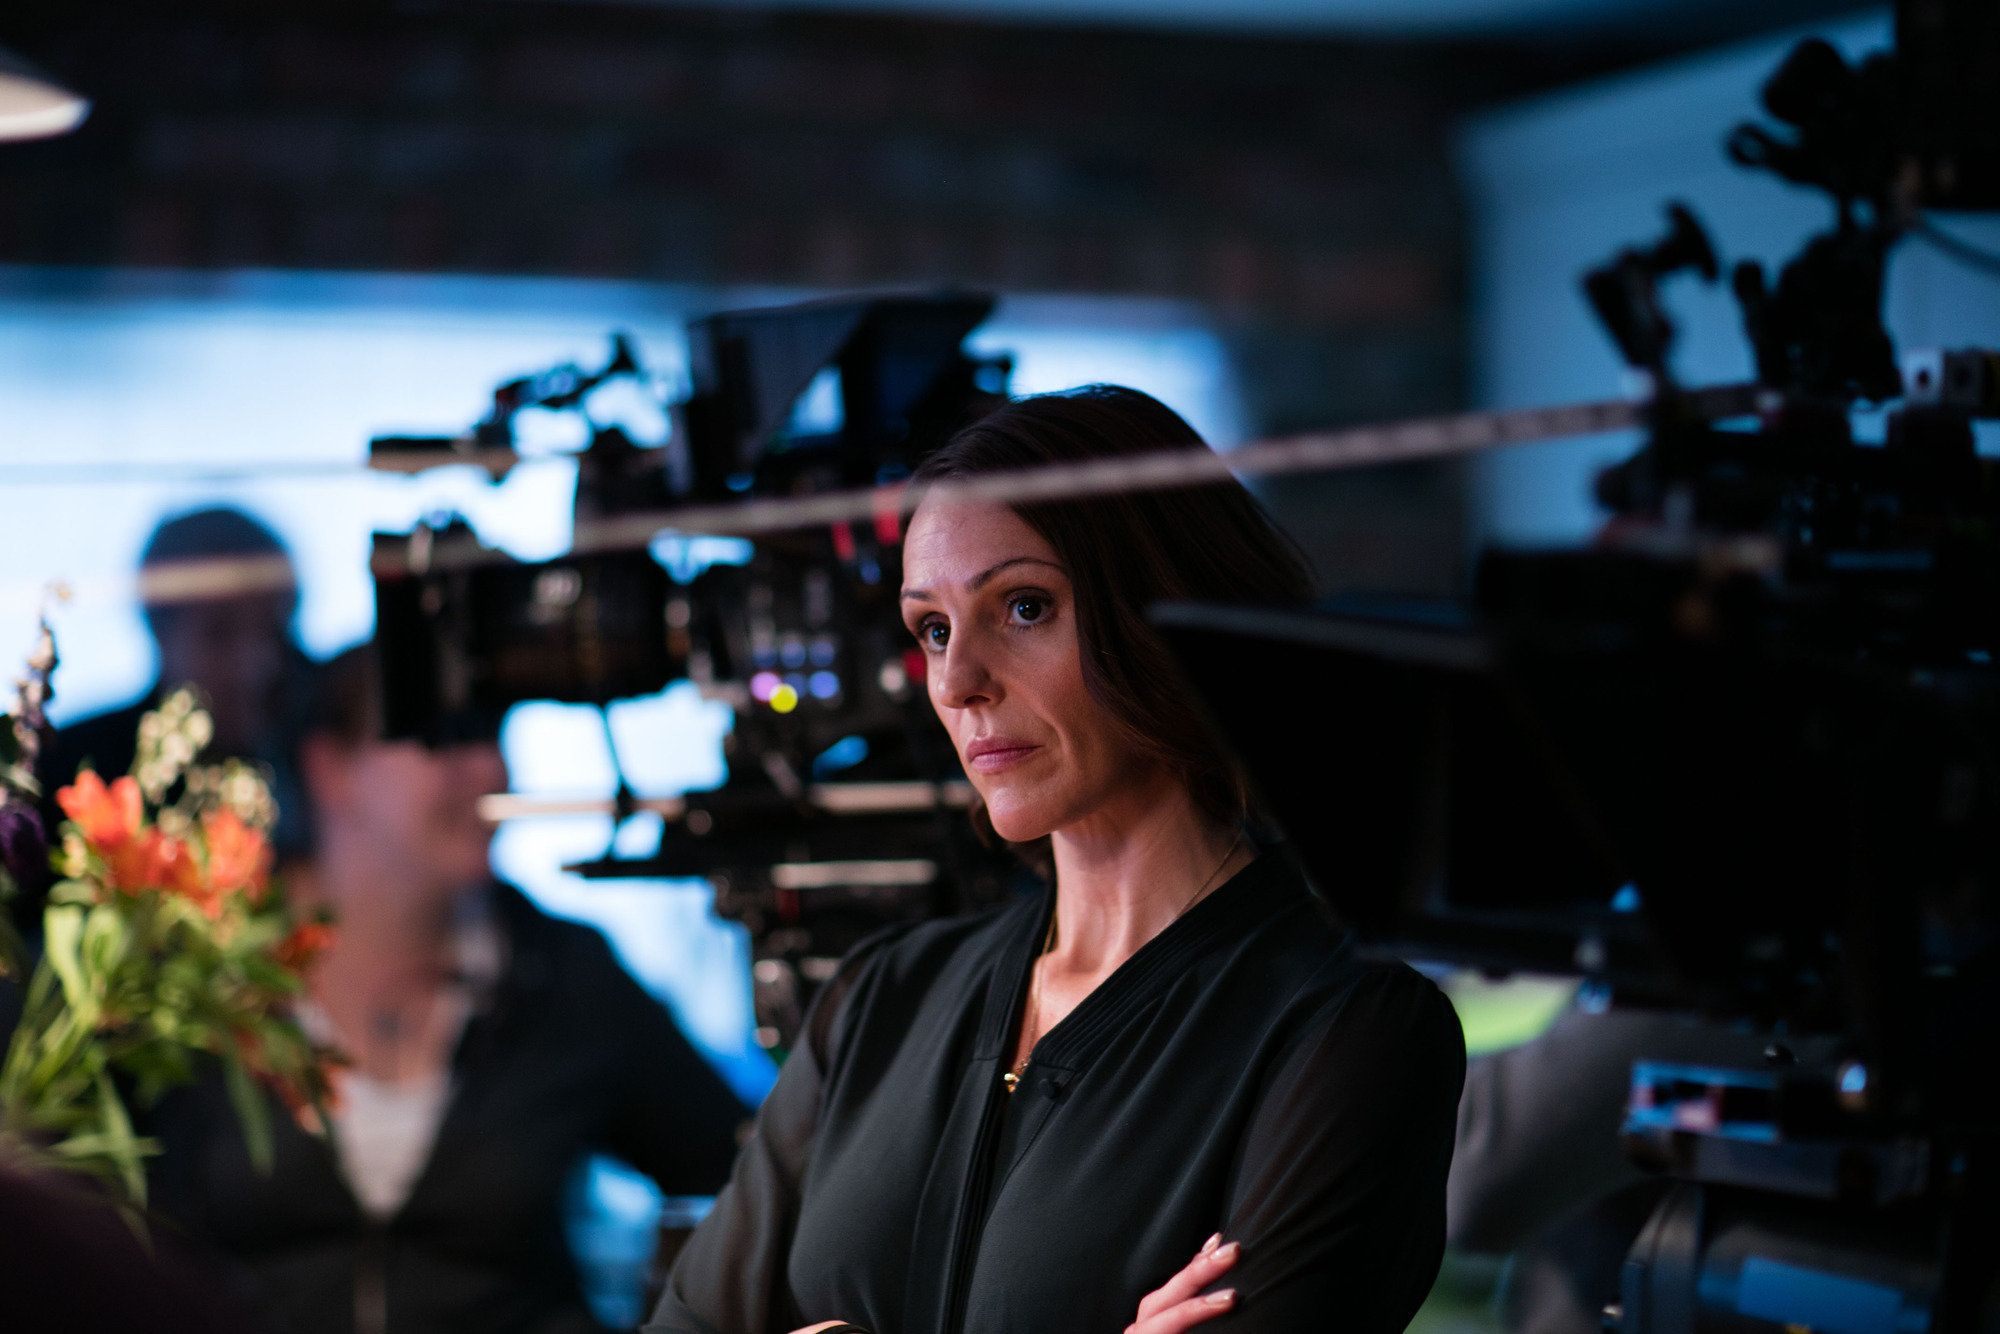 Doctor Foster writer hints at dramatic ending for second series